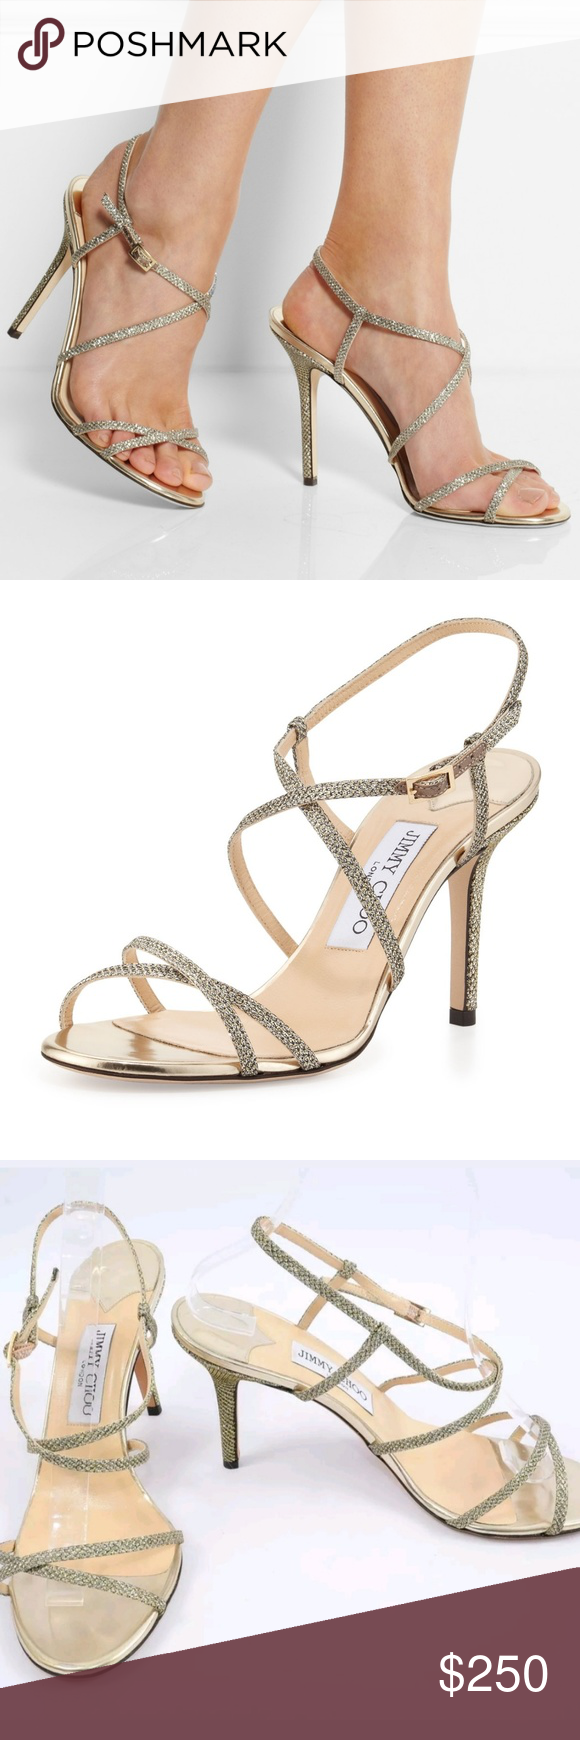 Jimmy Choo Elaine Strappy Sandal Glittering Straps Cross Atop A Minimalist Sandal With A Mirrored Midsole An Jimmy Choo Shoes Heels Strappy Sandals Jimmy Choo